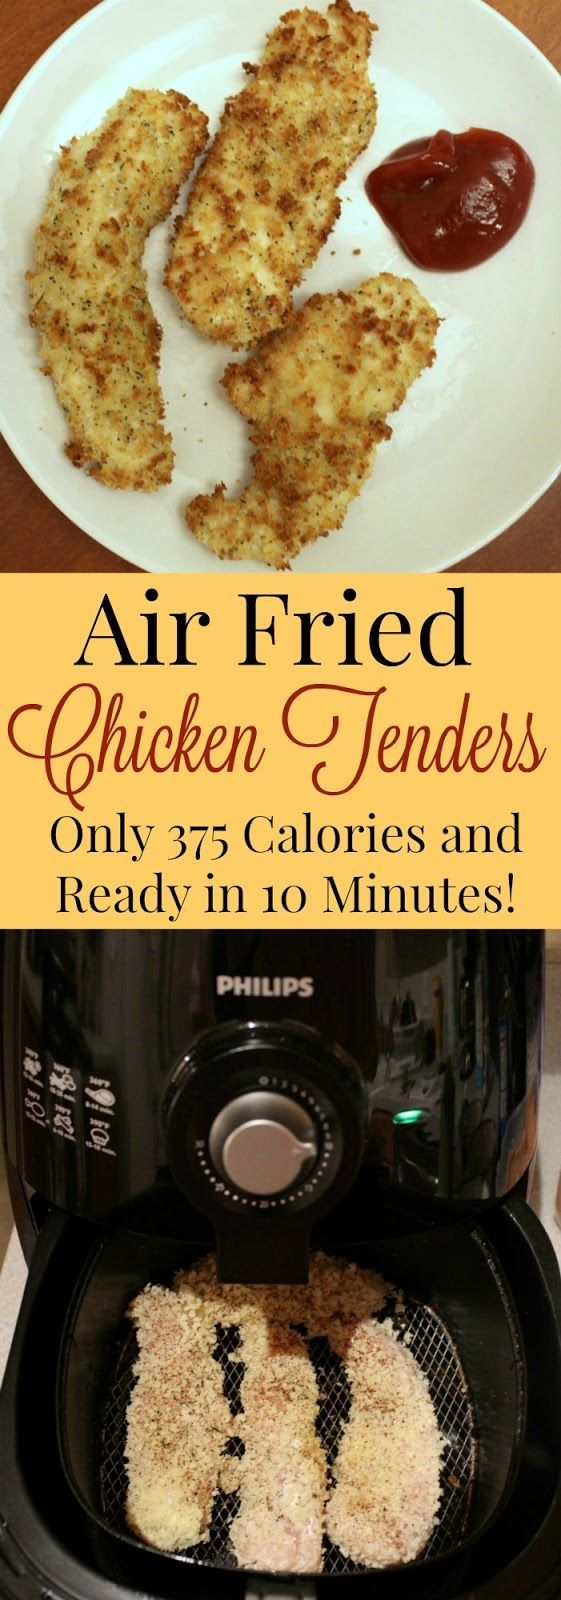 Air fried chicken tenders 375 calories each with 18 grams of carbs, 6 grams of fat and 57 grams of protein